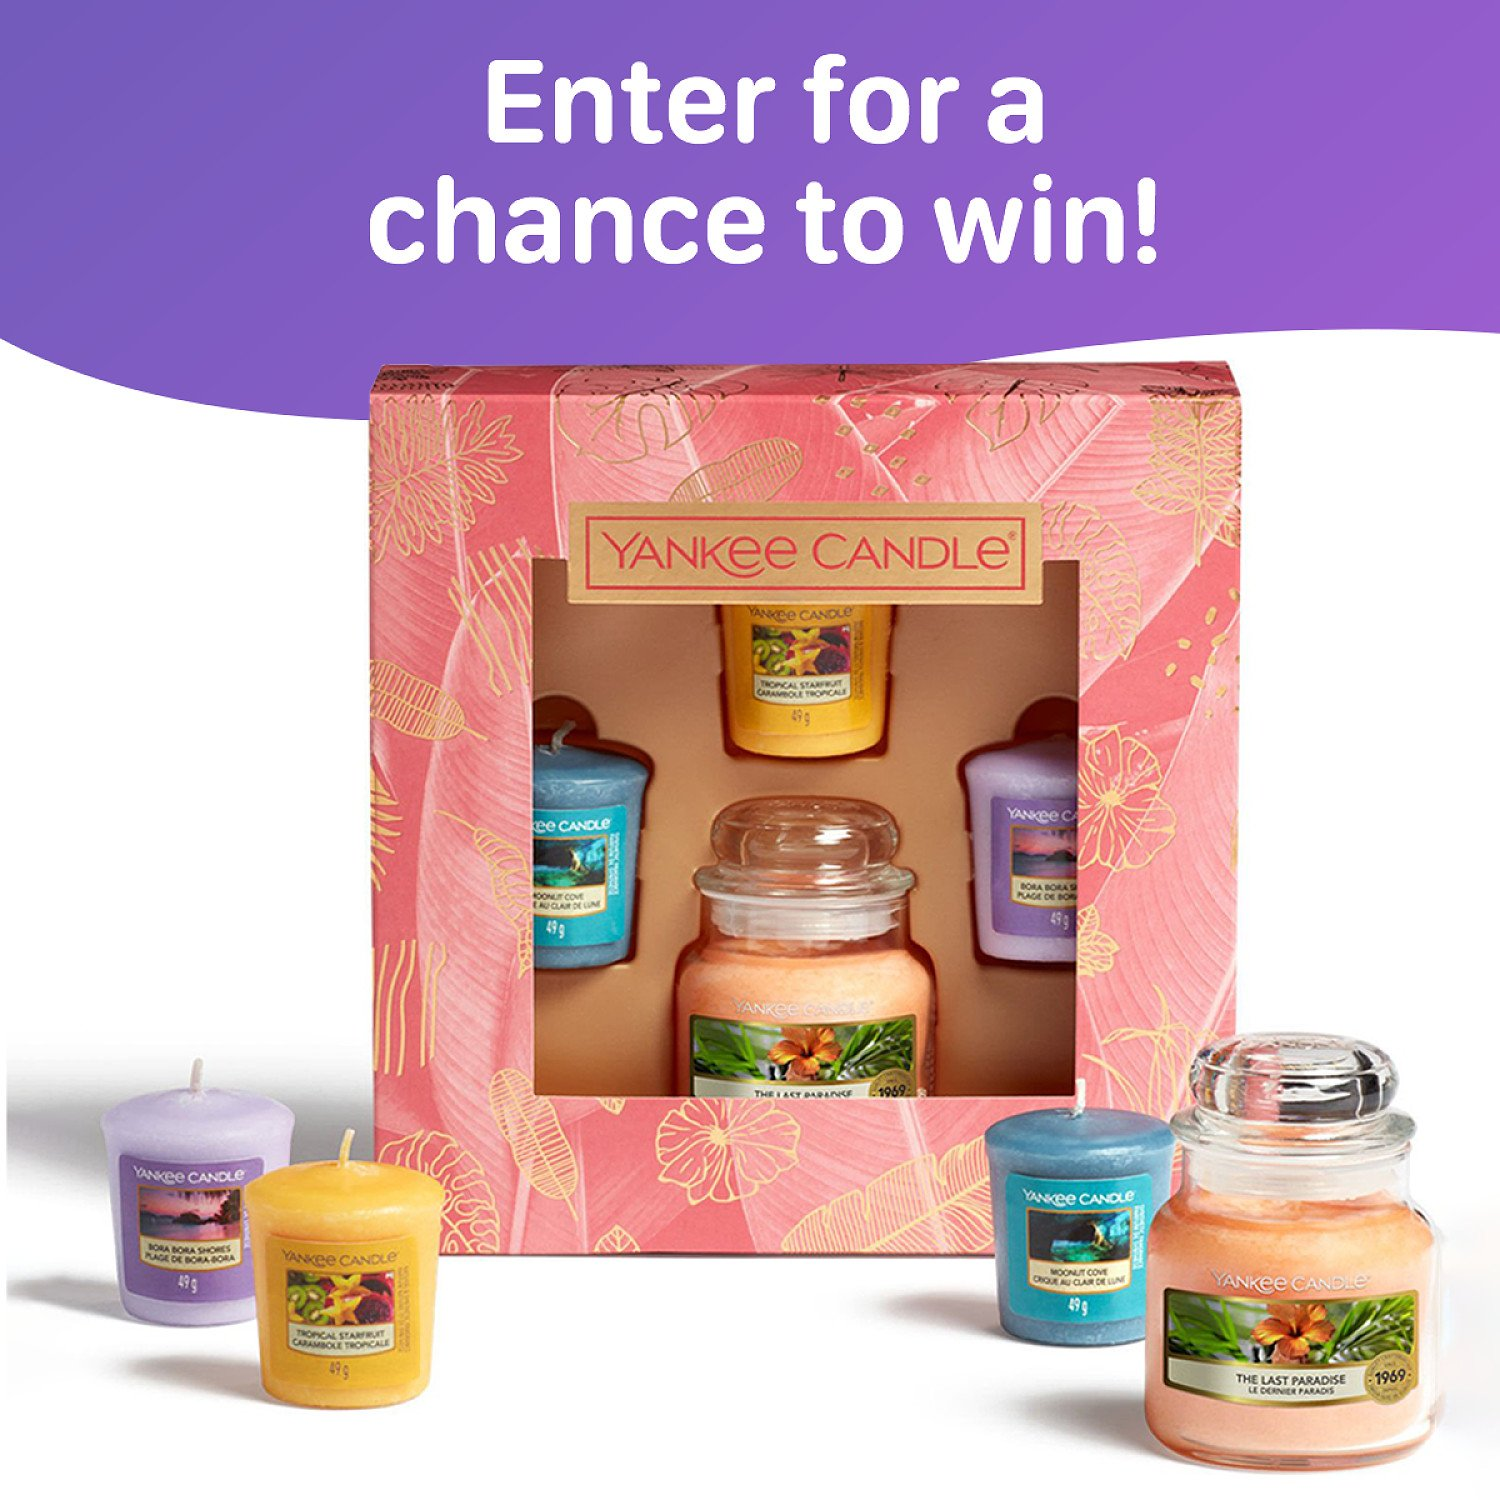 WIN this Yankee Candle Last Paradise Gift Set